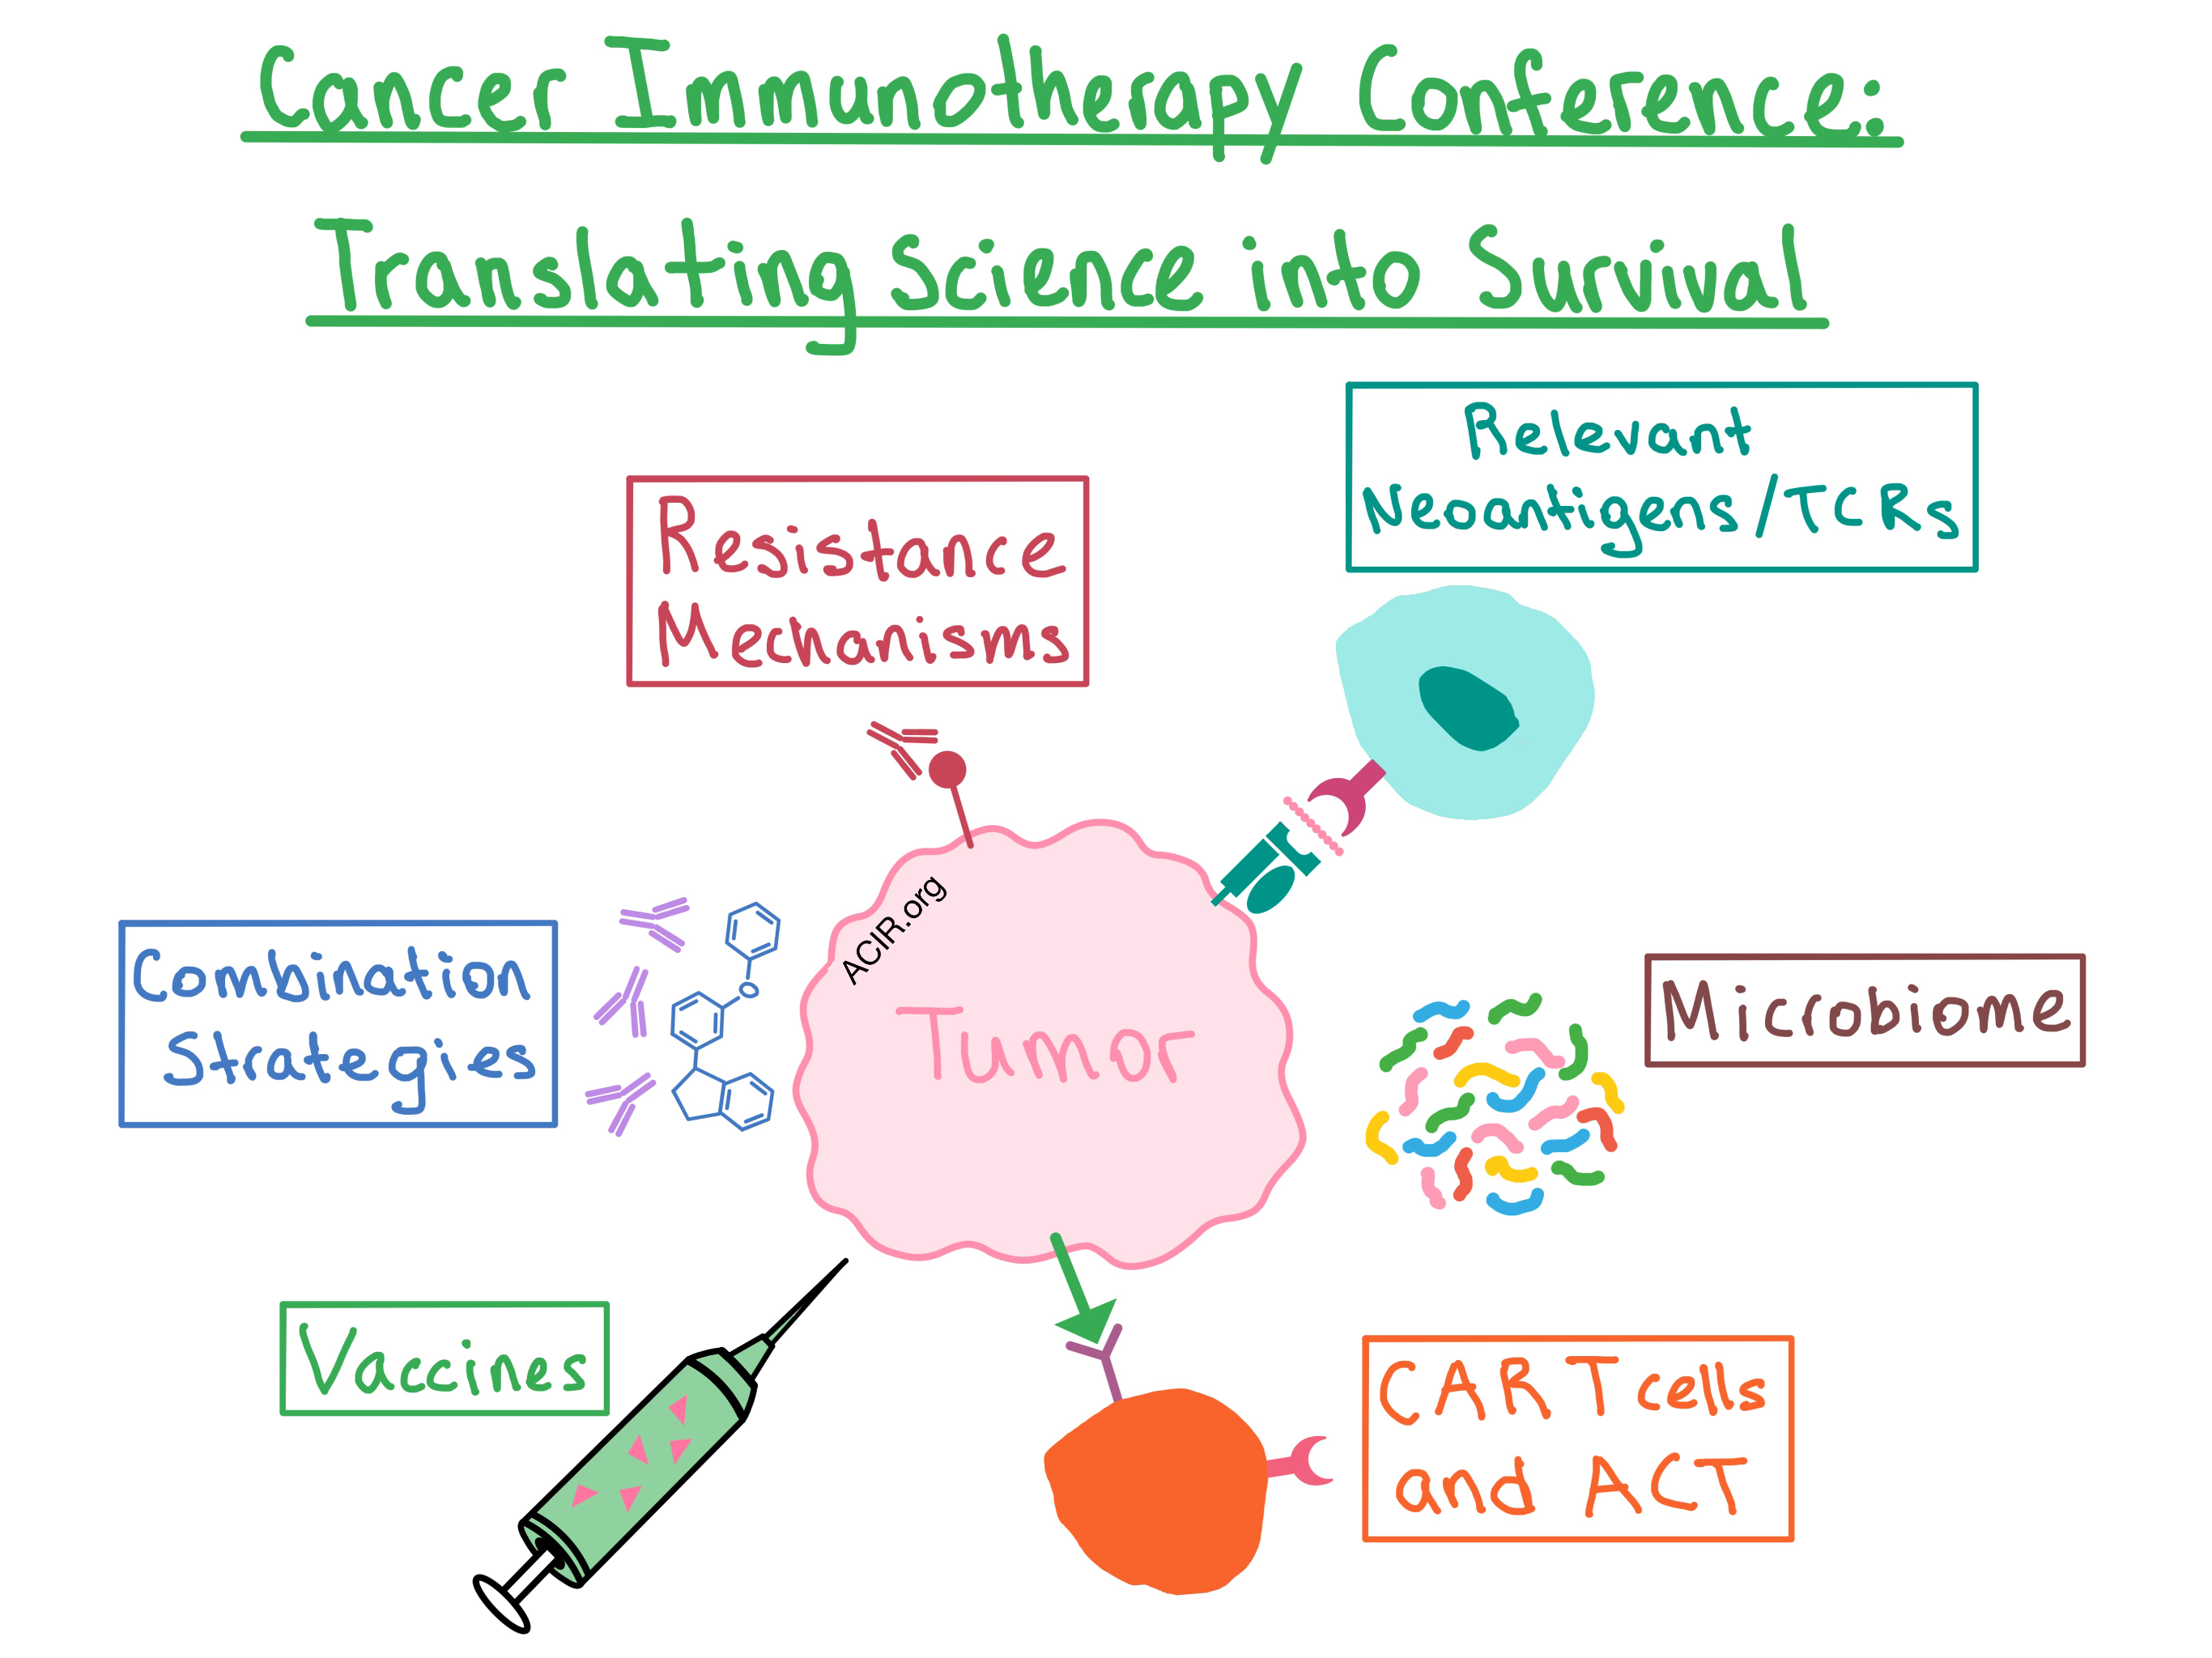 Fourth CRI-CIMT-EATI-AACR International Cancer Immunotherapy